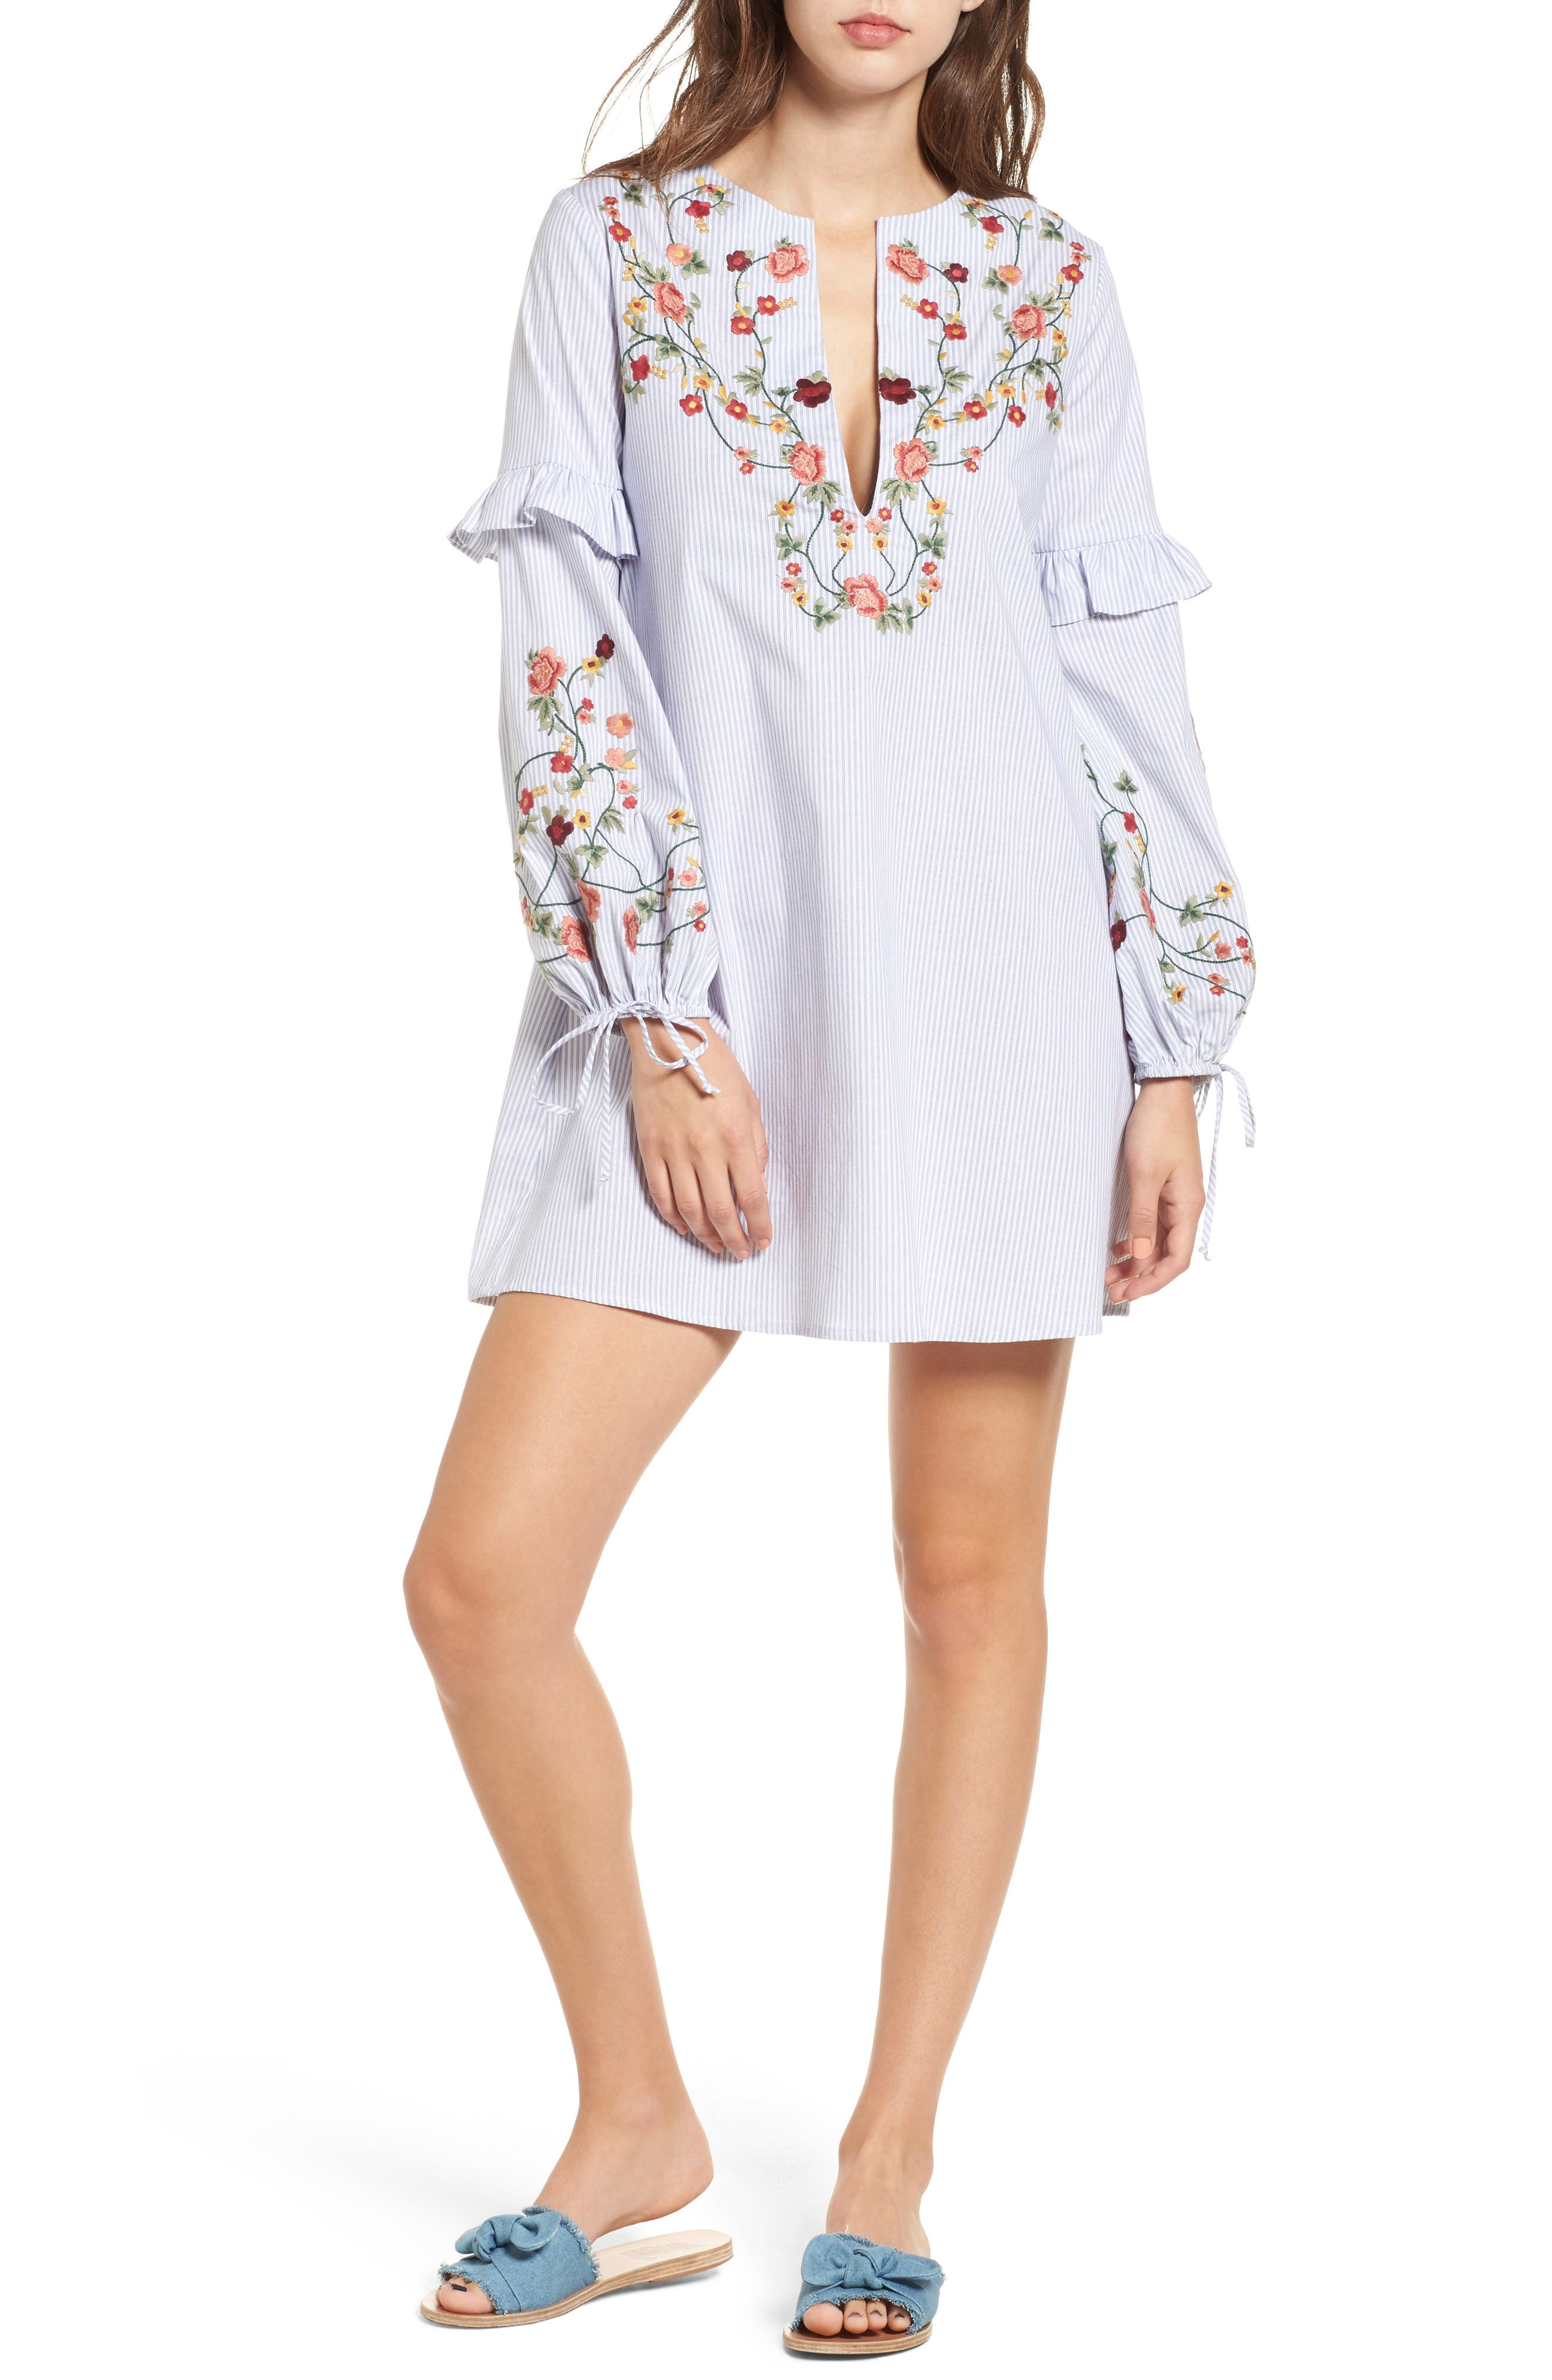 Alternate Image 1 Selected - Socialite Embroidered Poplin Dress